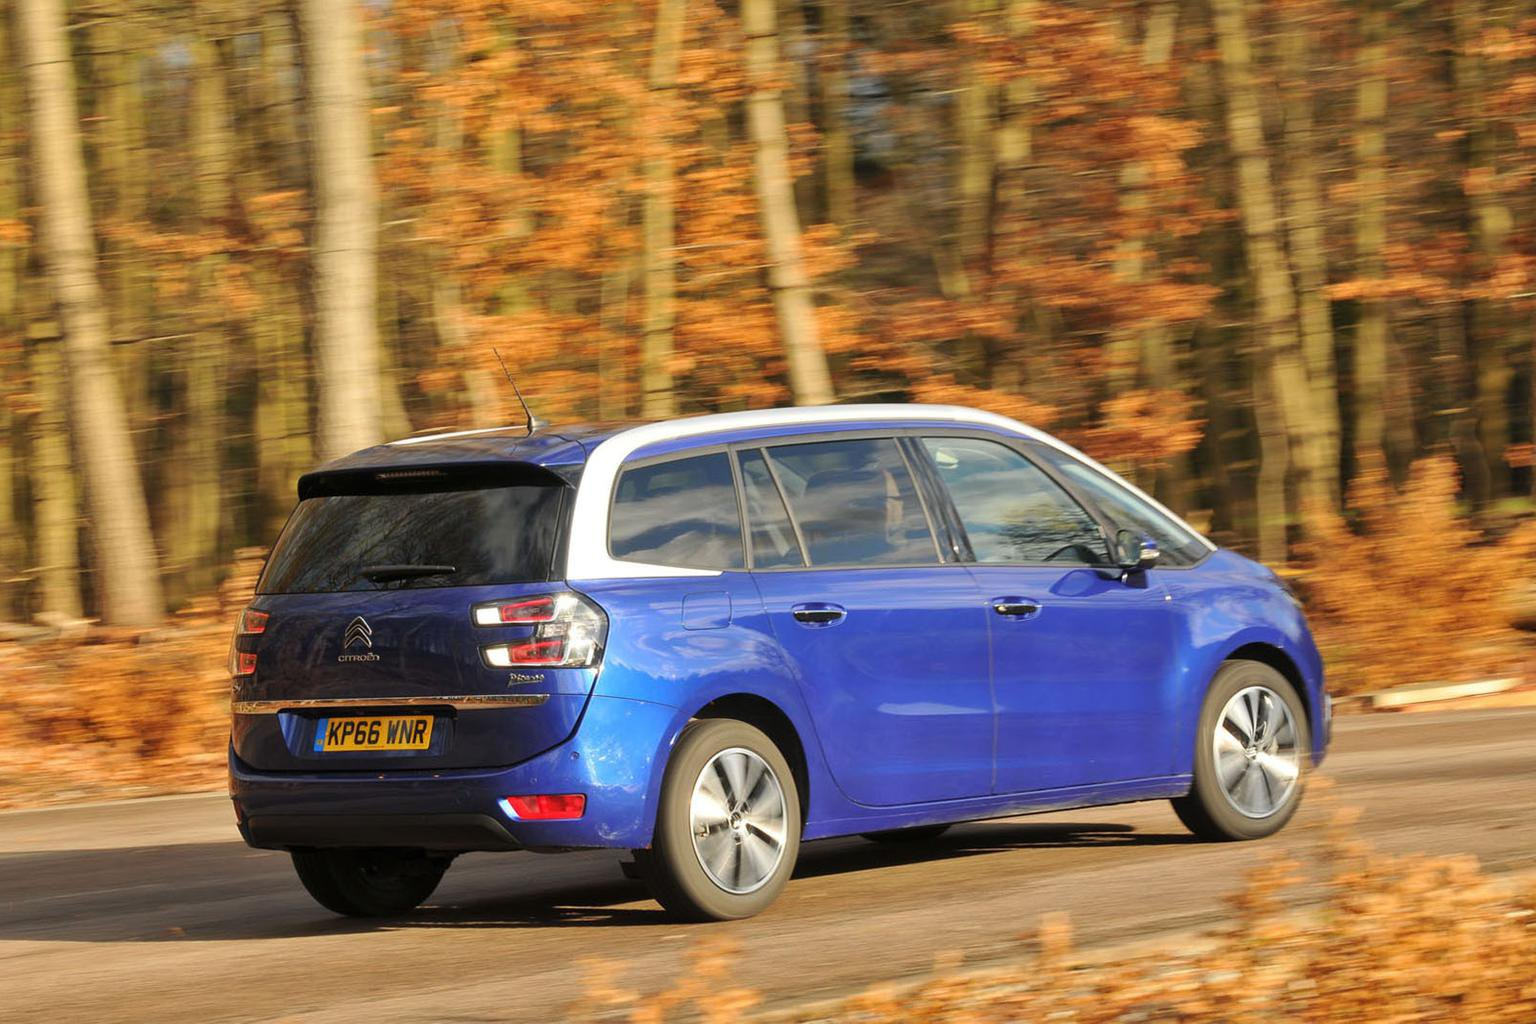 New Renault Grand Scenic vs Citroen Grand C4 Picasso vs Volkswagen Touran